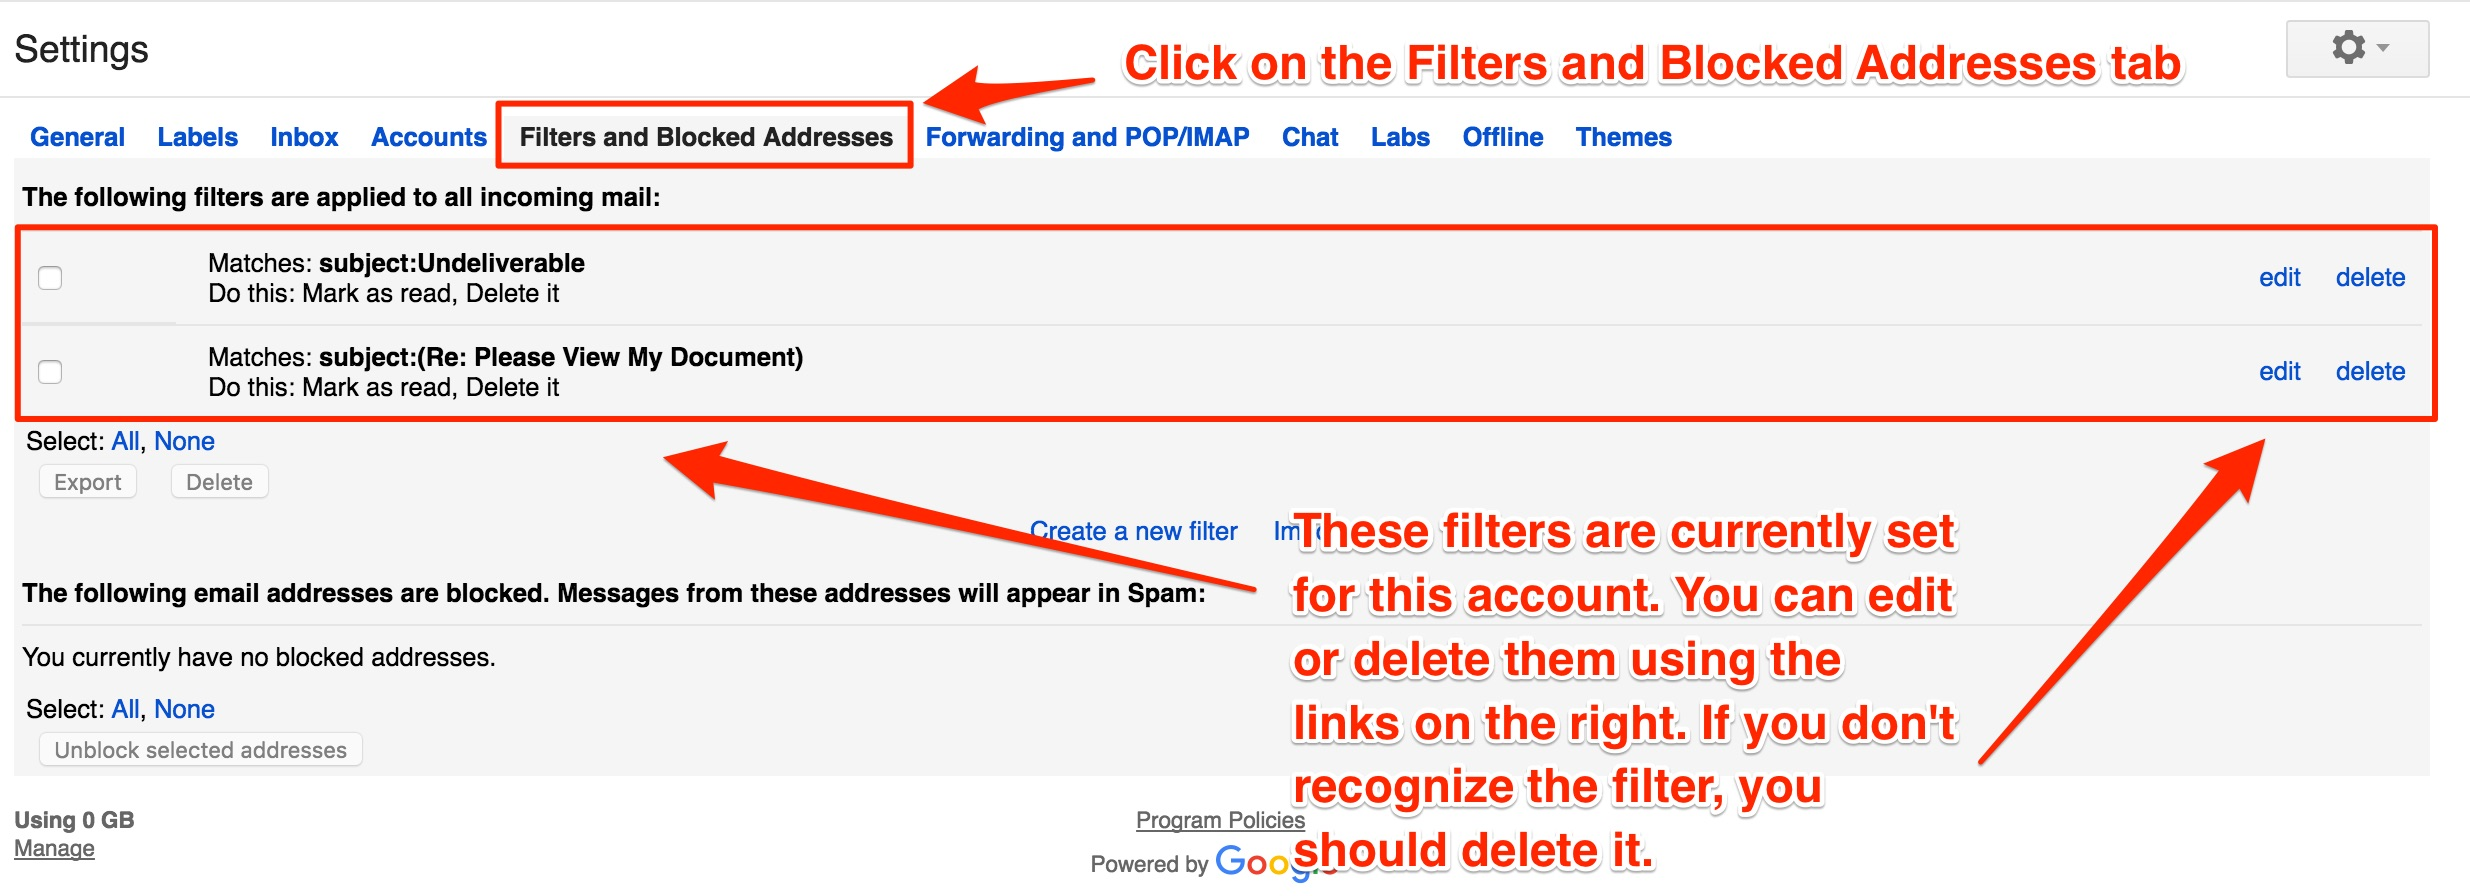 Filters And Blocked Addresses